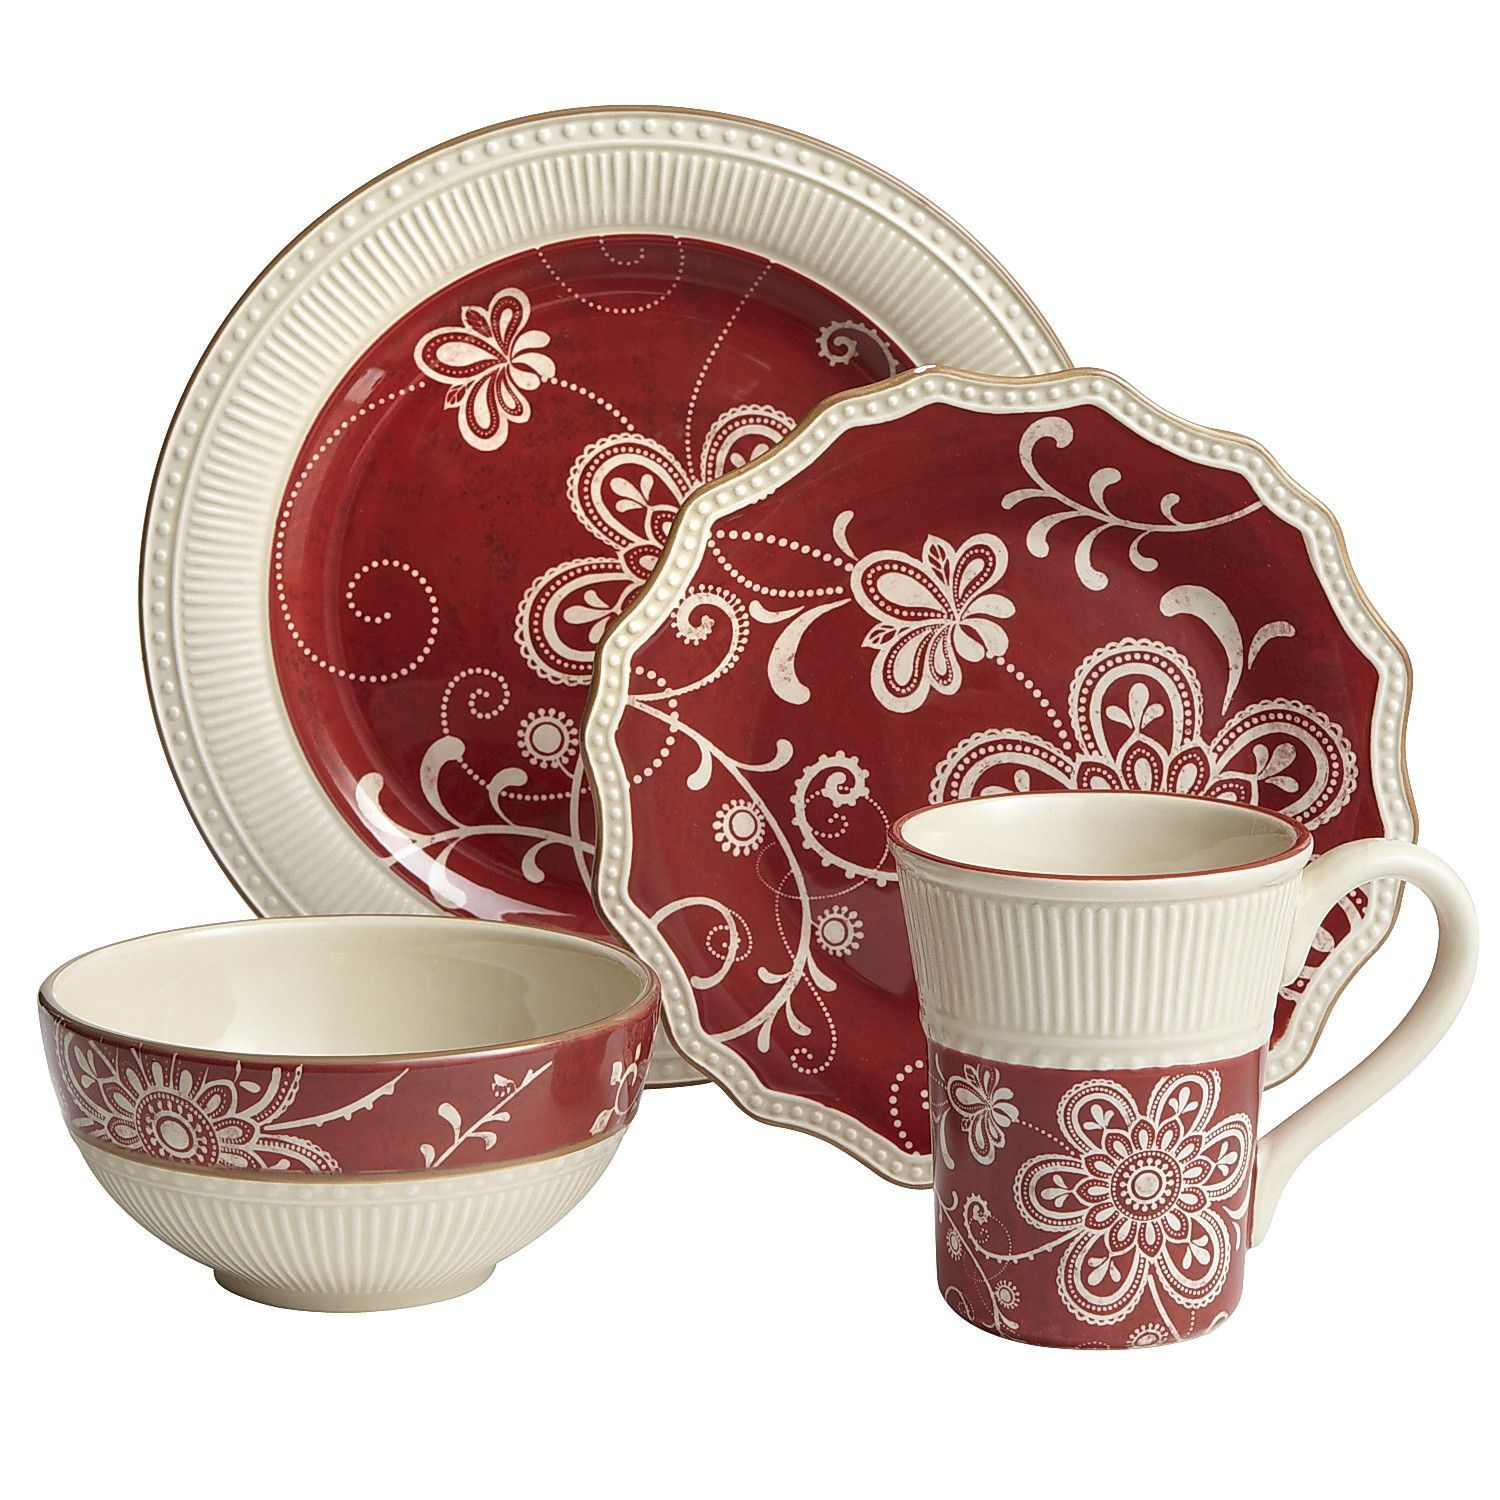 maribeth dinnerware for the home pinterest tasse poterie et porcelaine. Black Bedroom Furniture Sets. Home Design Ideas